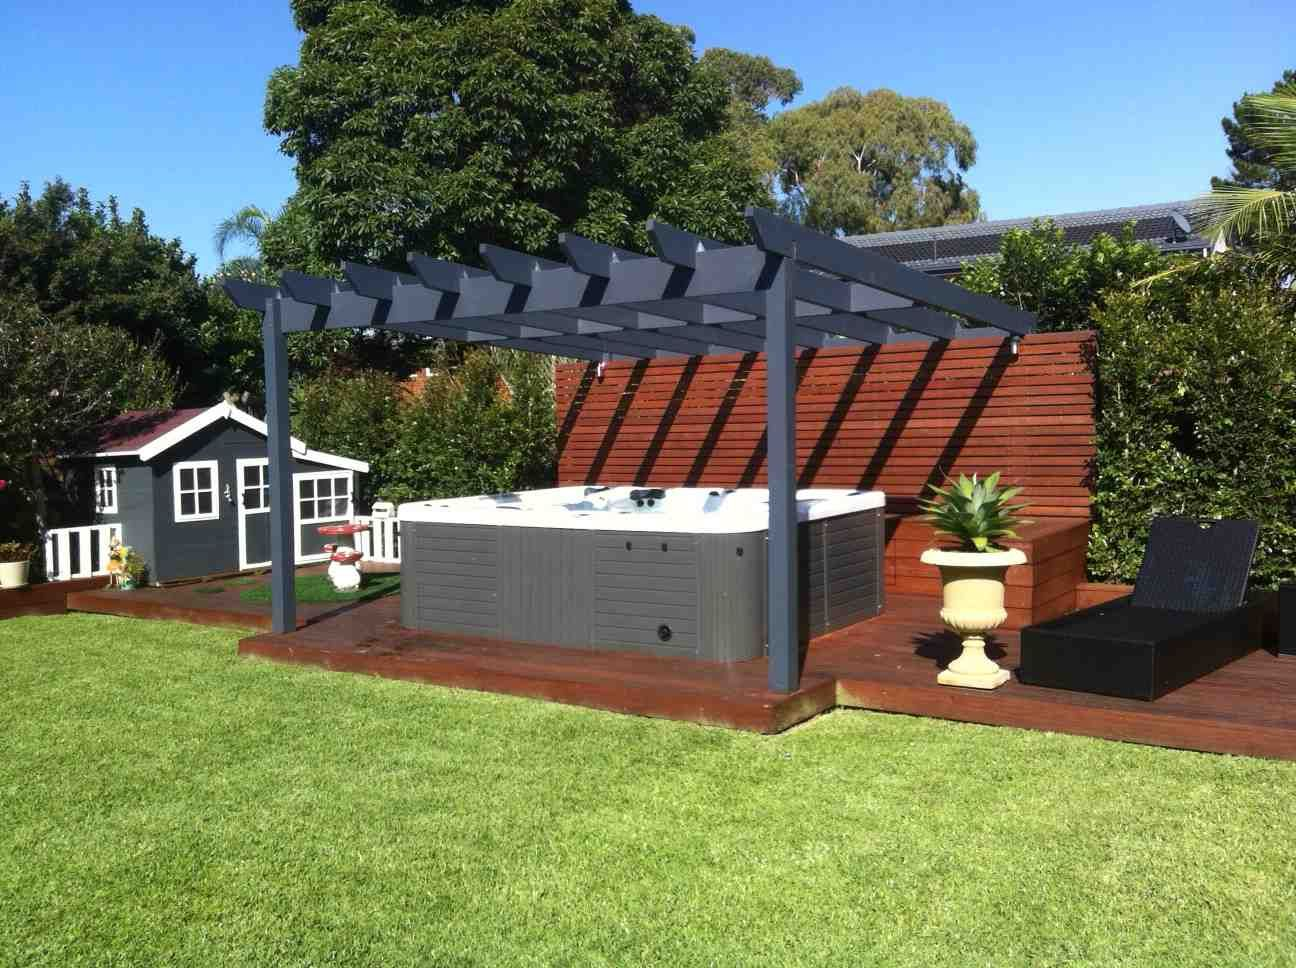 Portable spa Beautifully finished and landscaped under the ... on Outdoor Living Spa id=62048